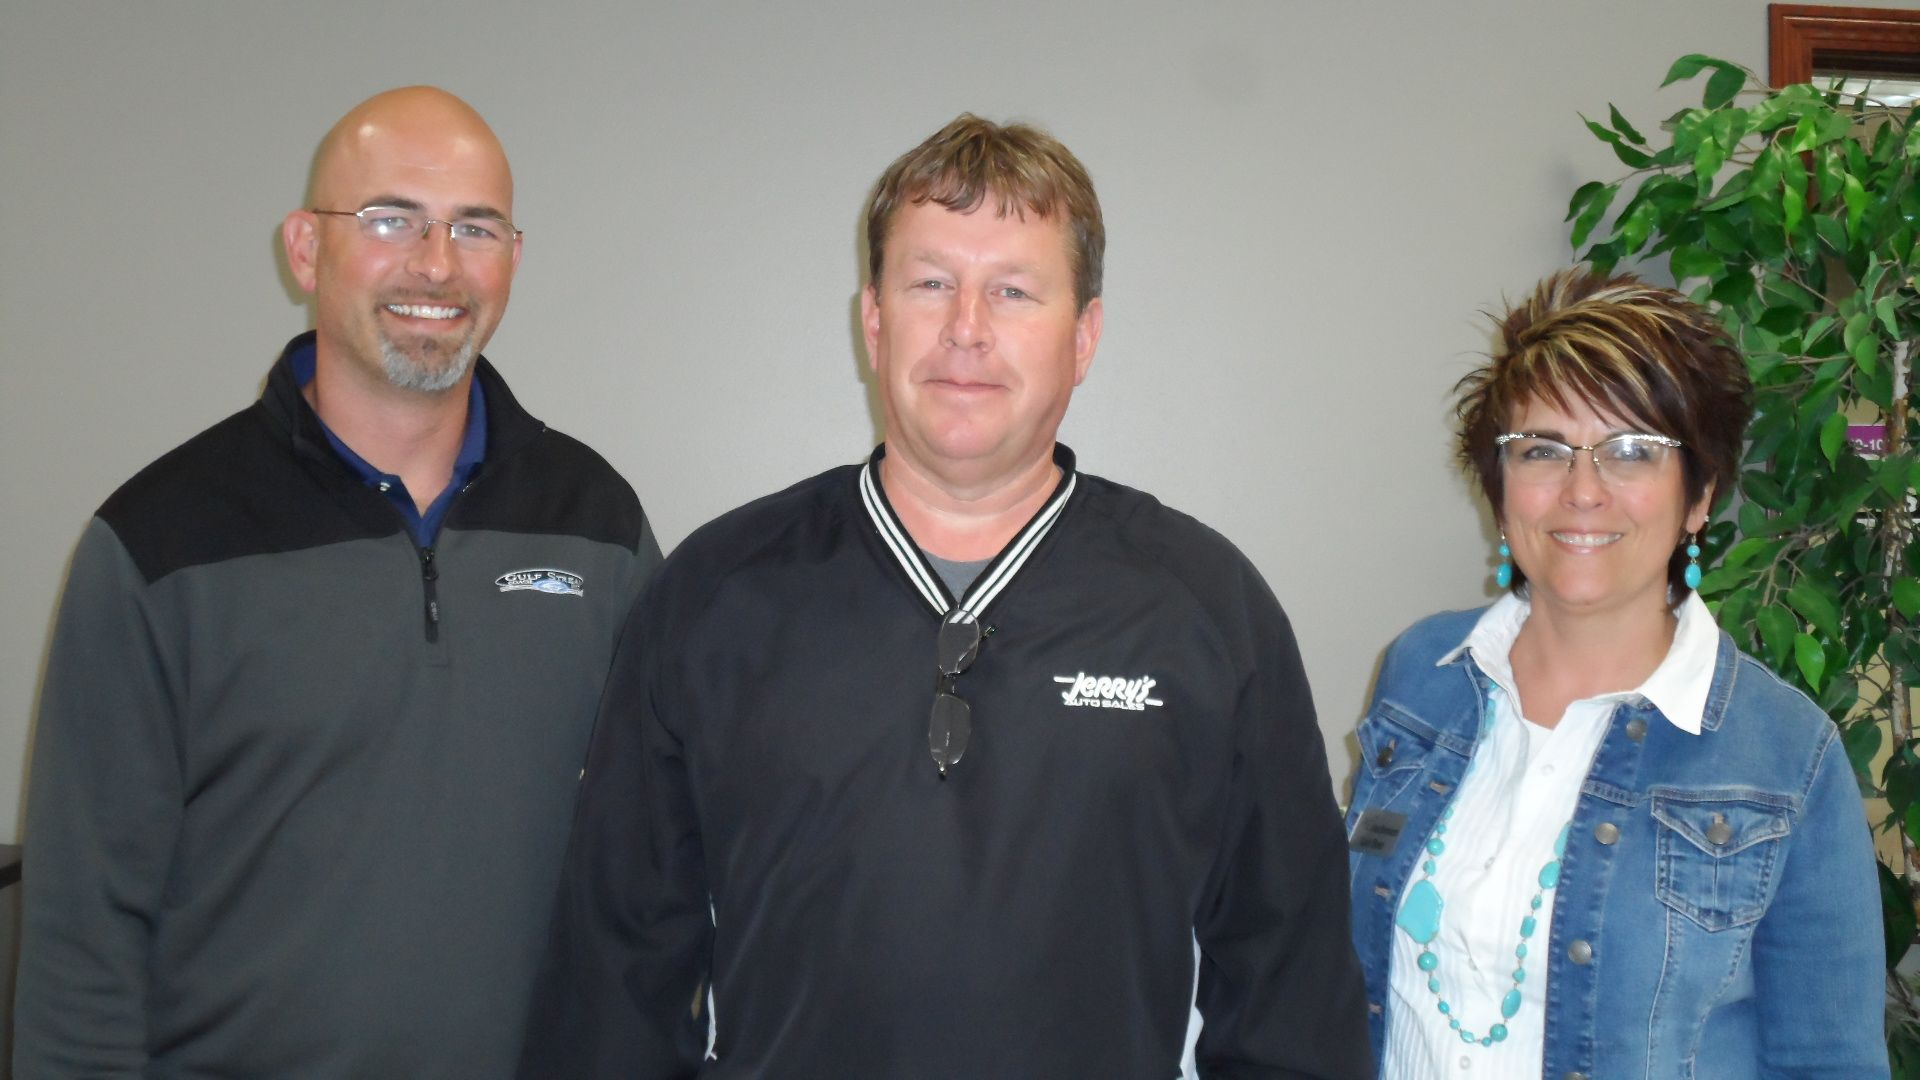 Our factory reps from gulfstream and forest river along